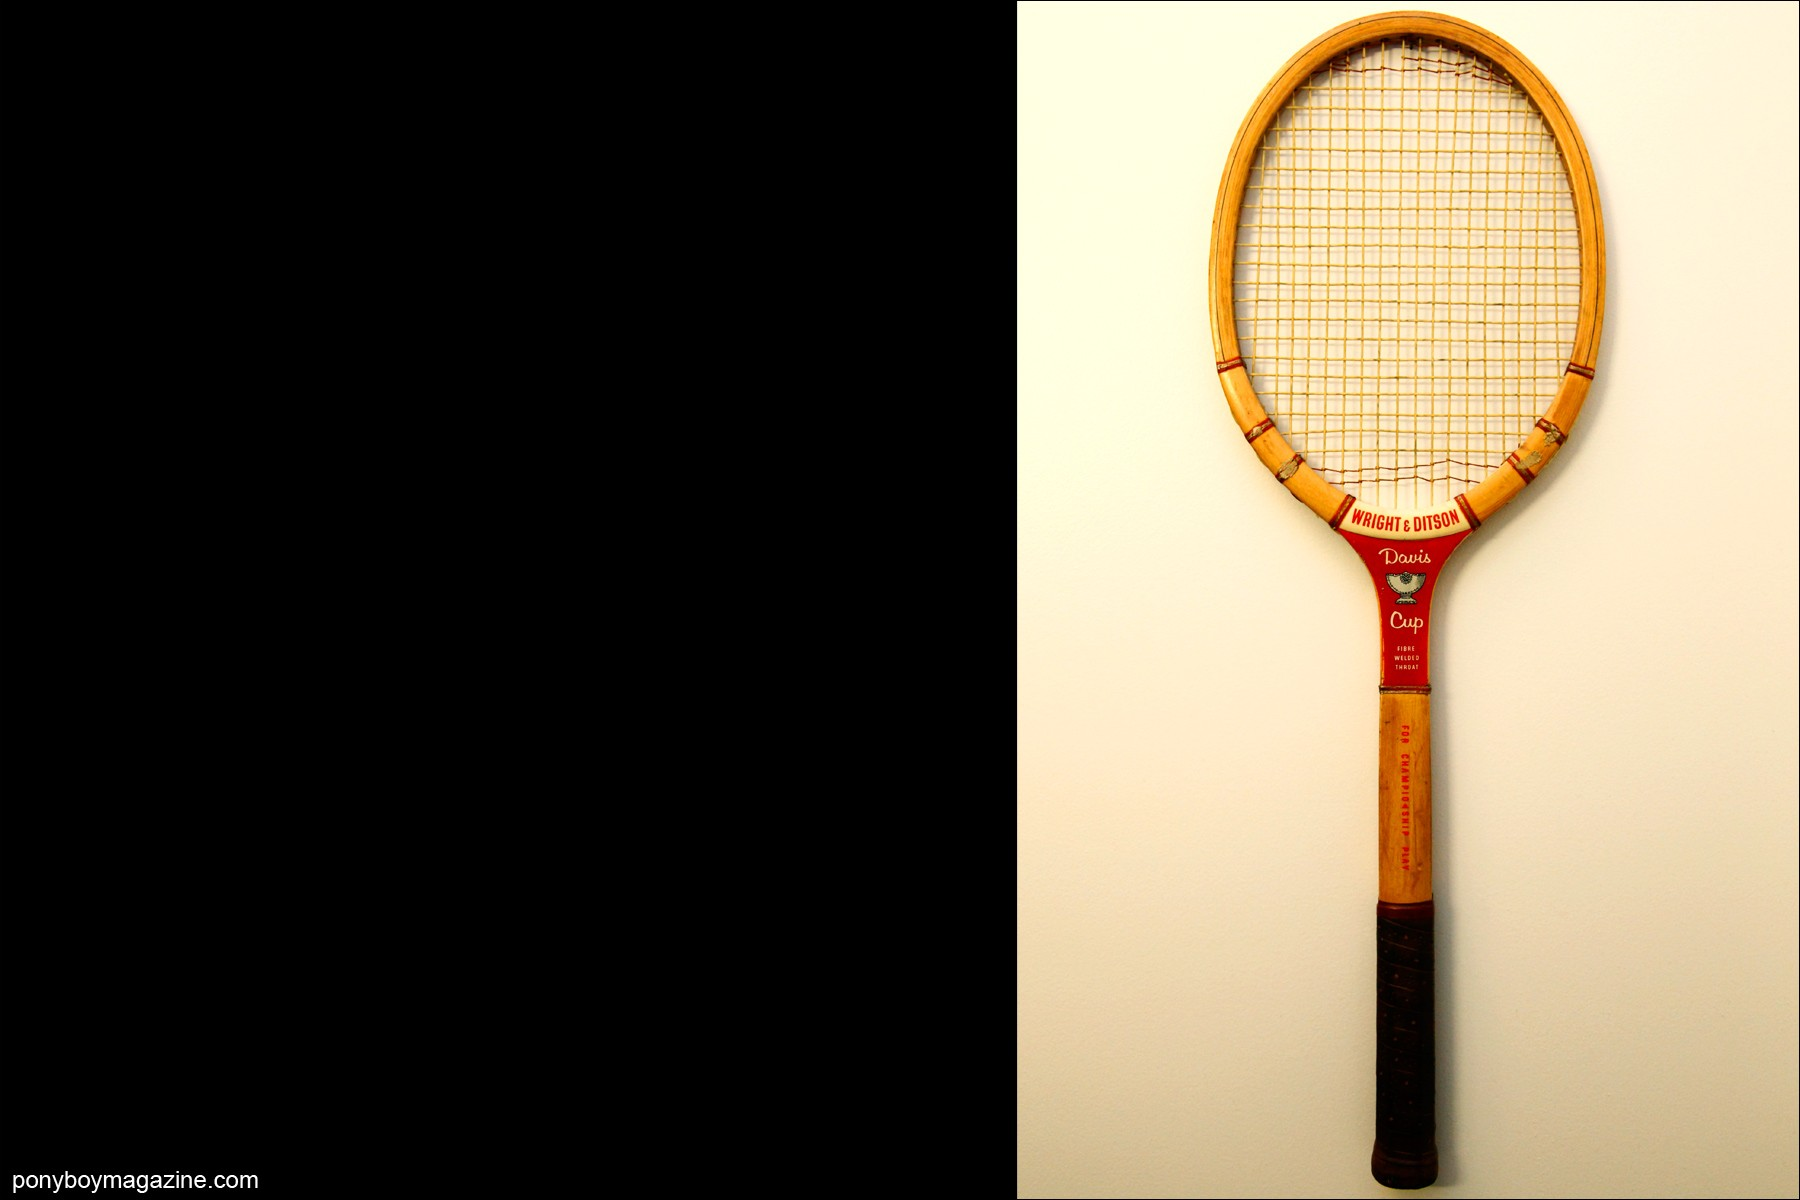 A vintage Davis Cup tennis racket, owned by editor Peter Davis. Photographed for Ponyboy Magazine by Alexander Thompson.